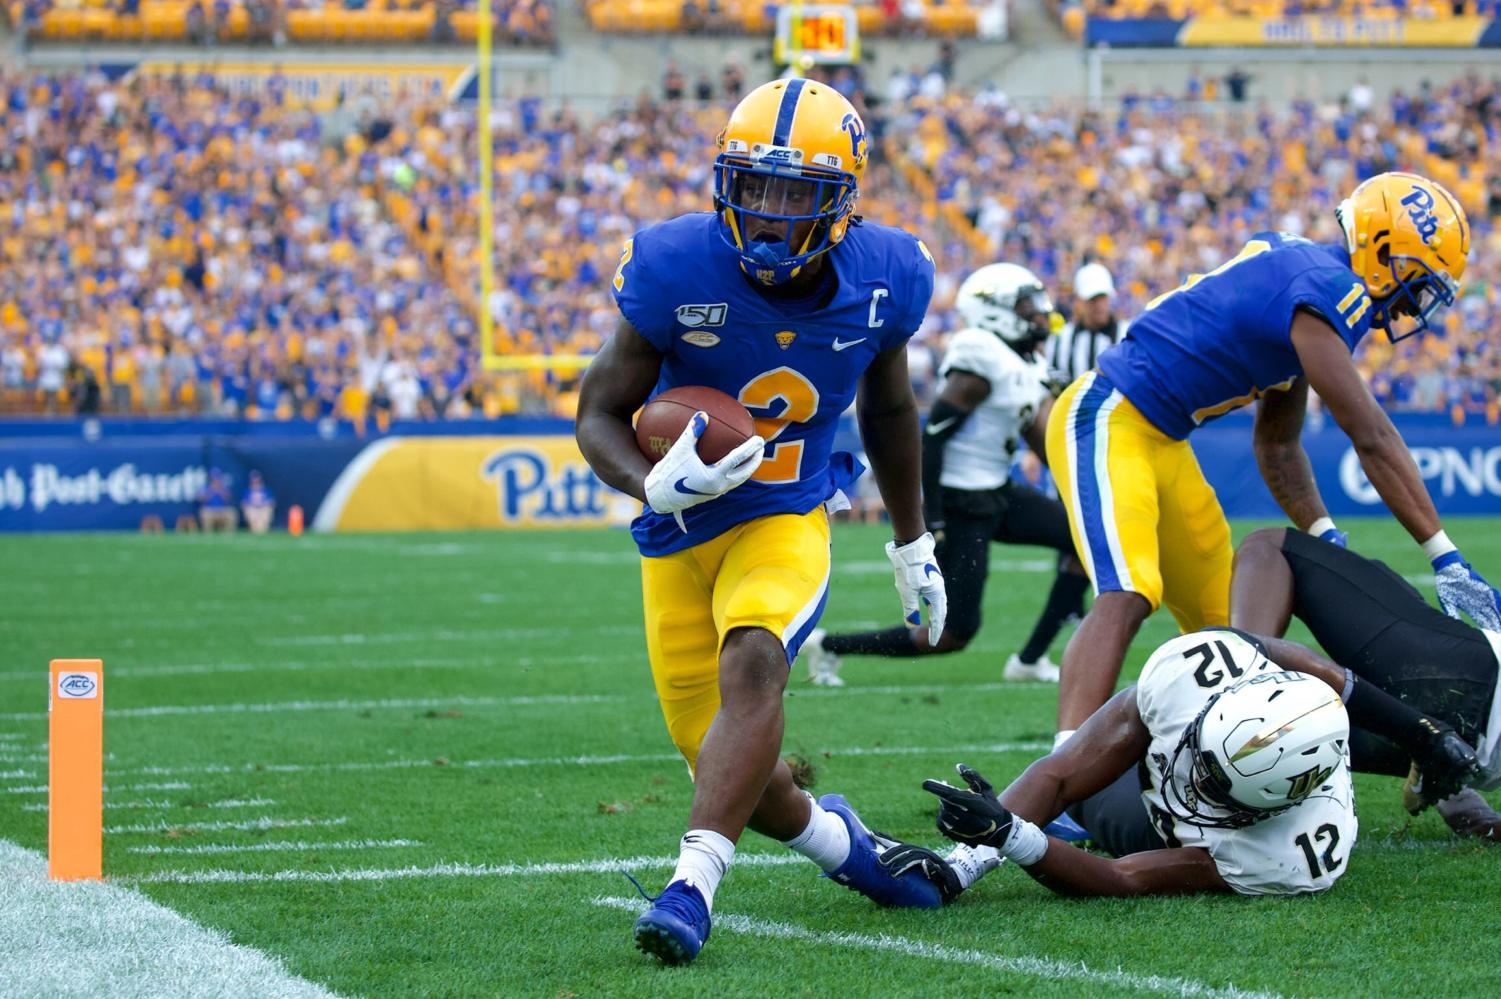 Senior receiver Maurice Ffrench makes his way into the end zone for Pitt's second touchdown against UCF.